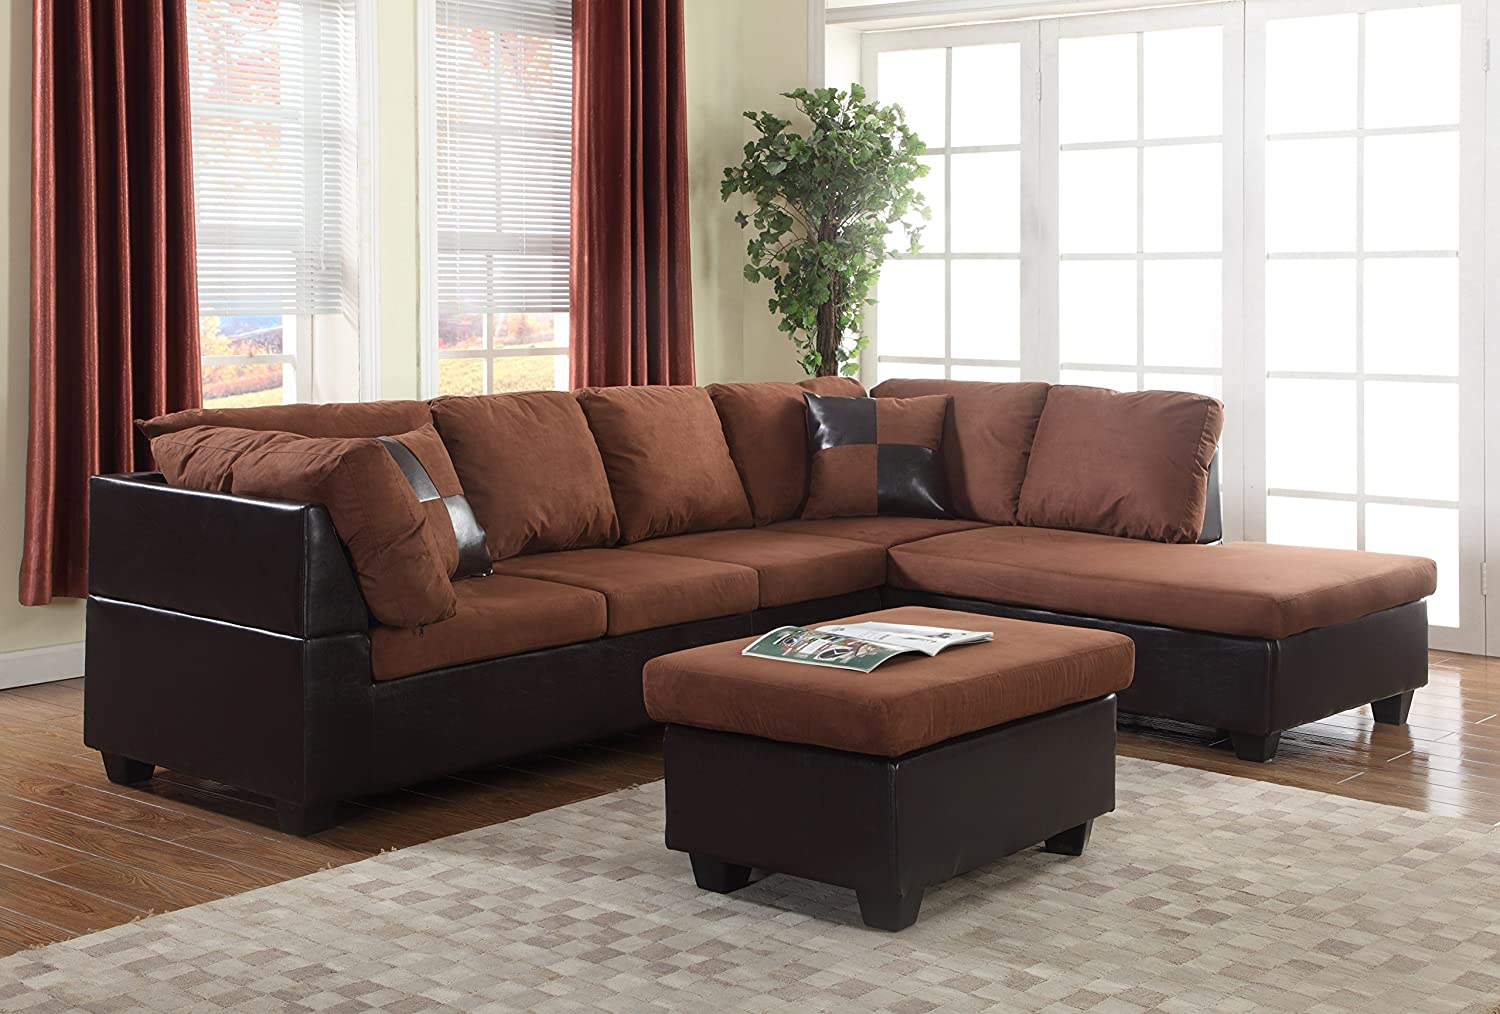 Amazon com gtu furniture microfiber sectional couch sofa living room set 3 color available with ottoman chocolate kitchen dining